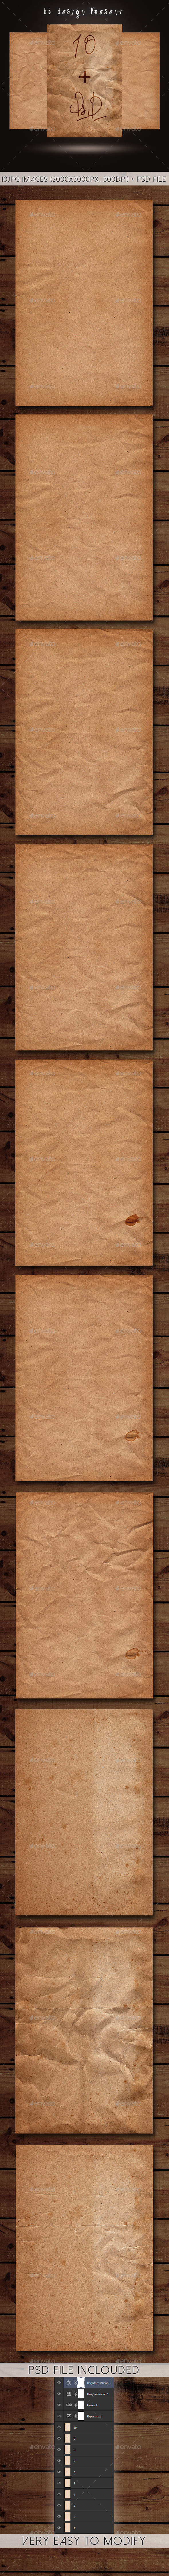 10 Old Paper Textures & PSD File